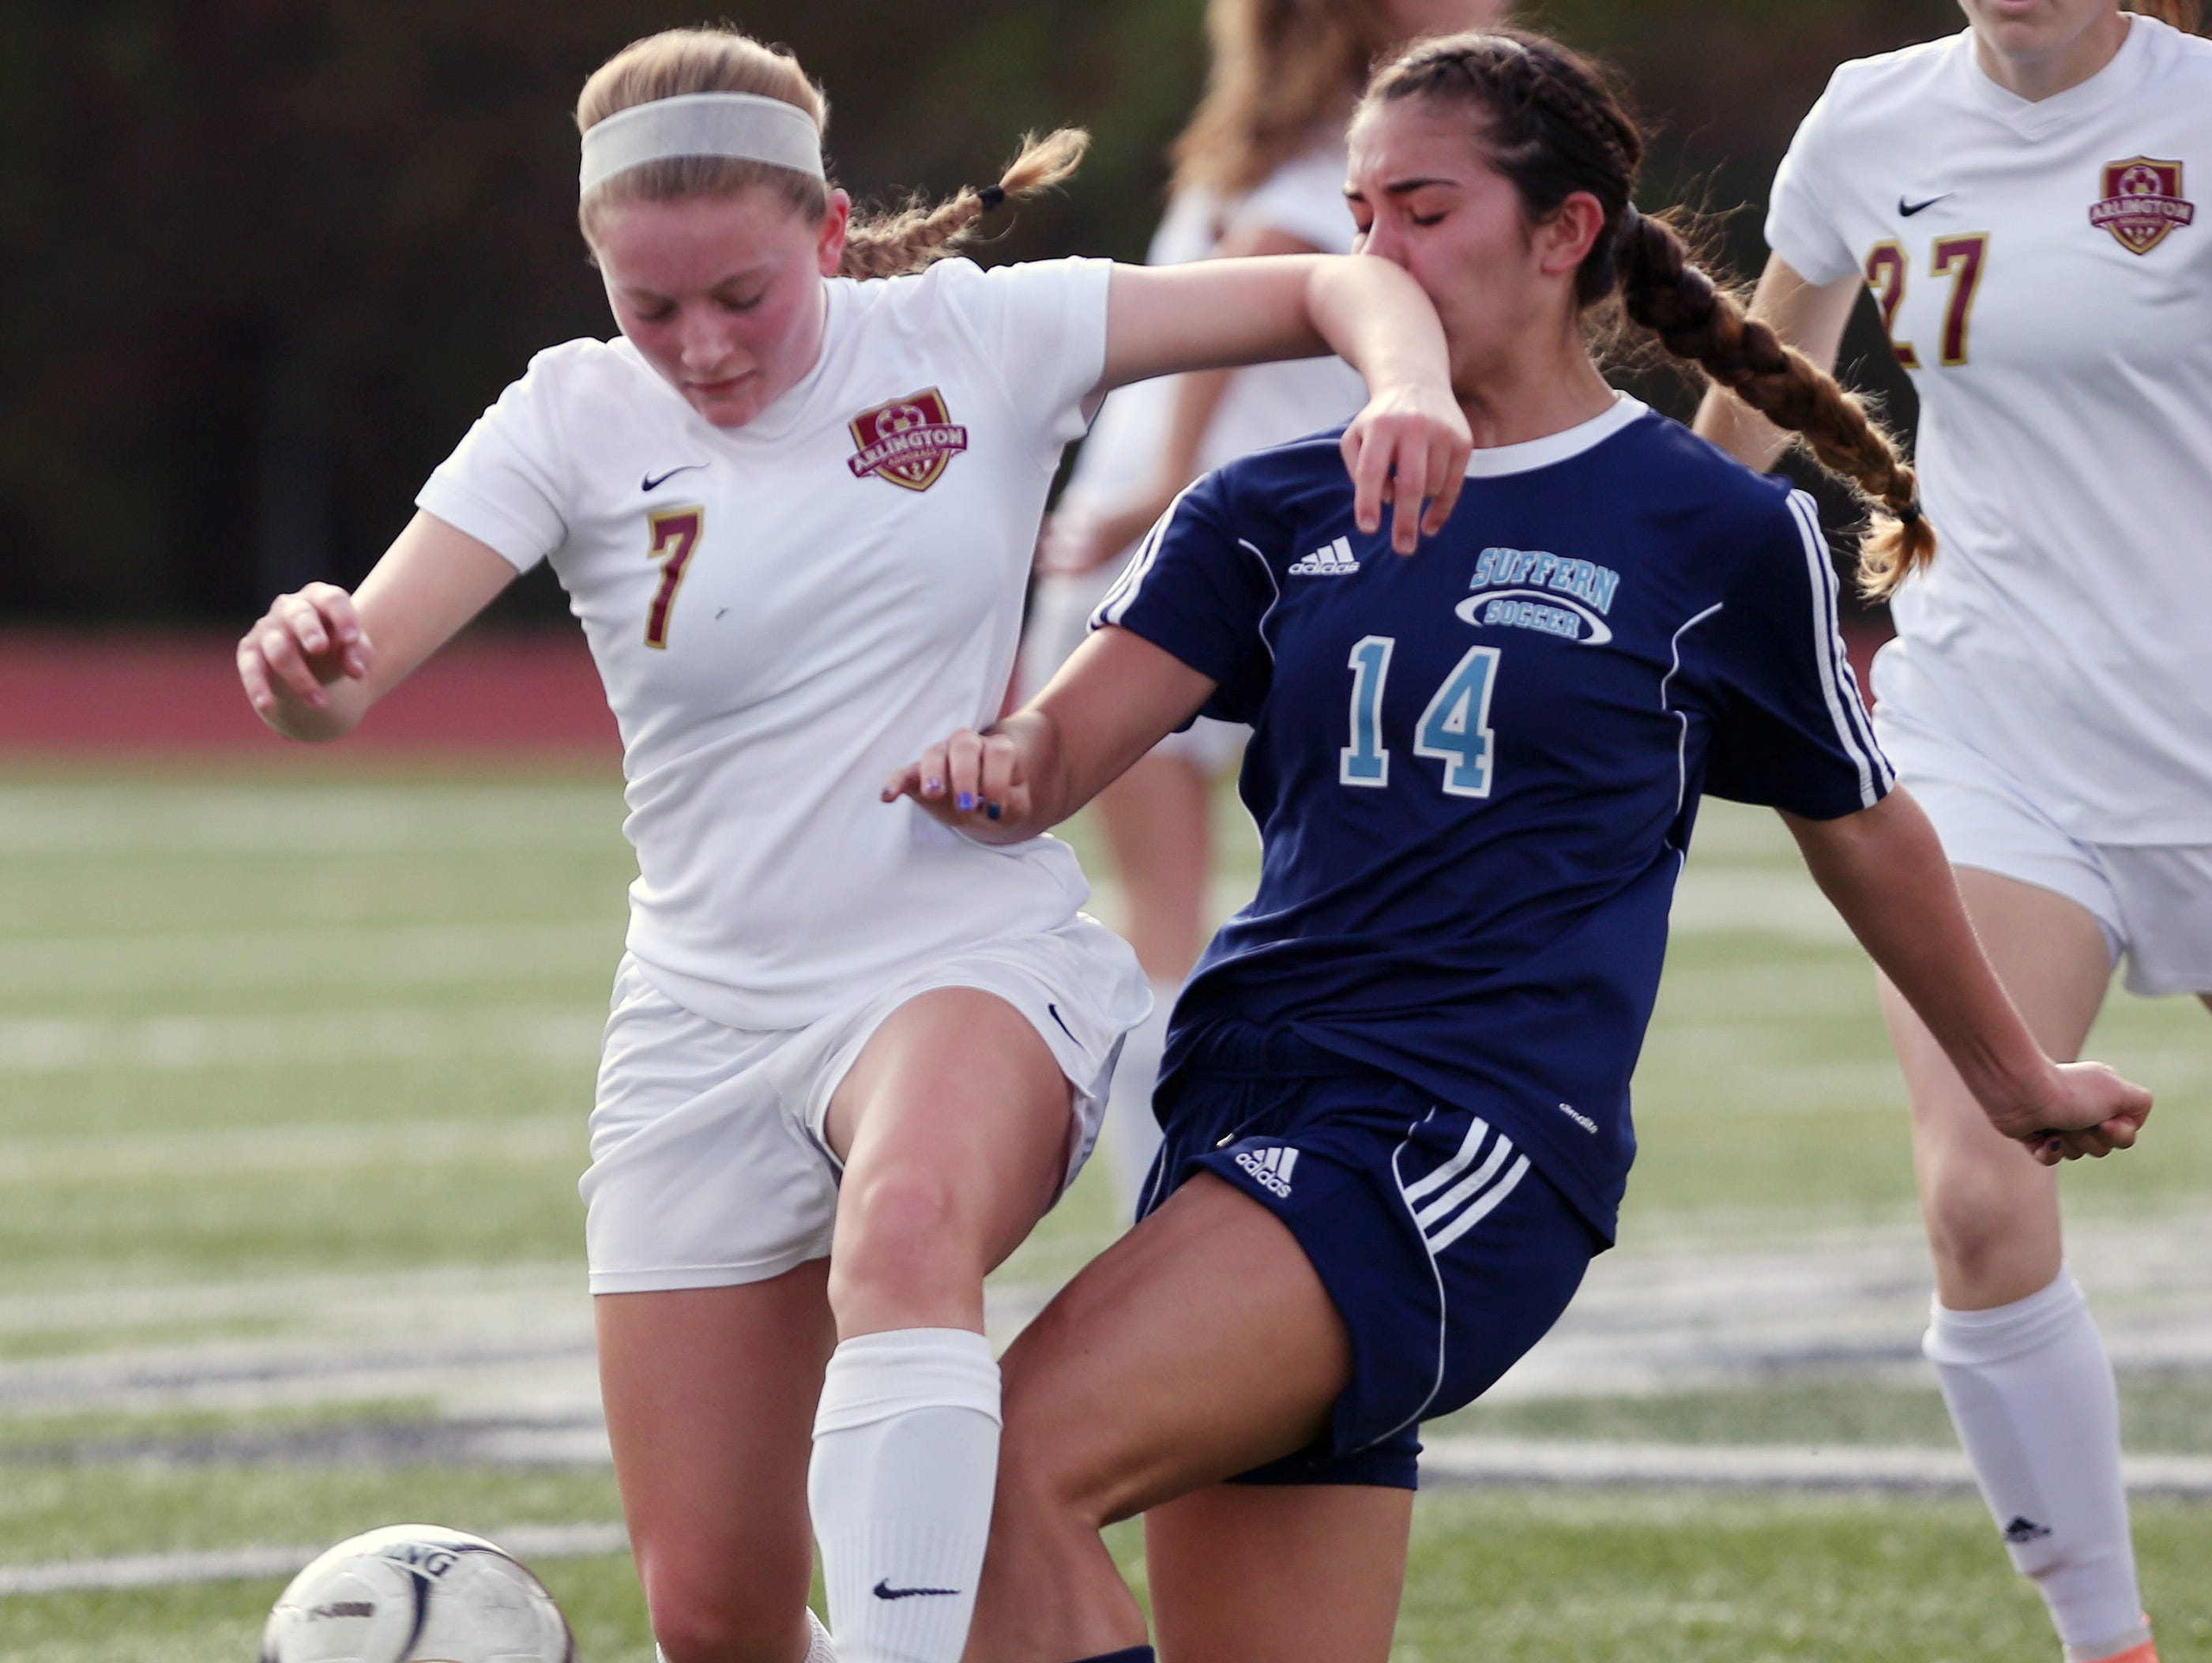 From left, Arlington's Allie Coon (7) and Suffern's Tatiana Cruz (14) battle for ball control during the girls soccer Section 1 Class AA championship game at Yorktown High School Oct. 30, 2016. Arlington won the game 2-0.